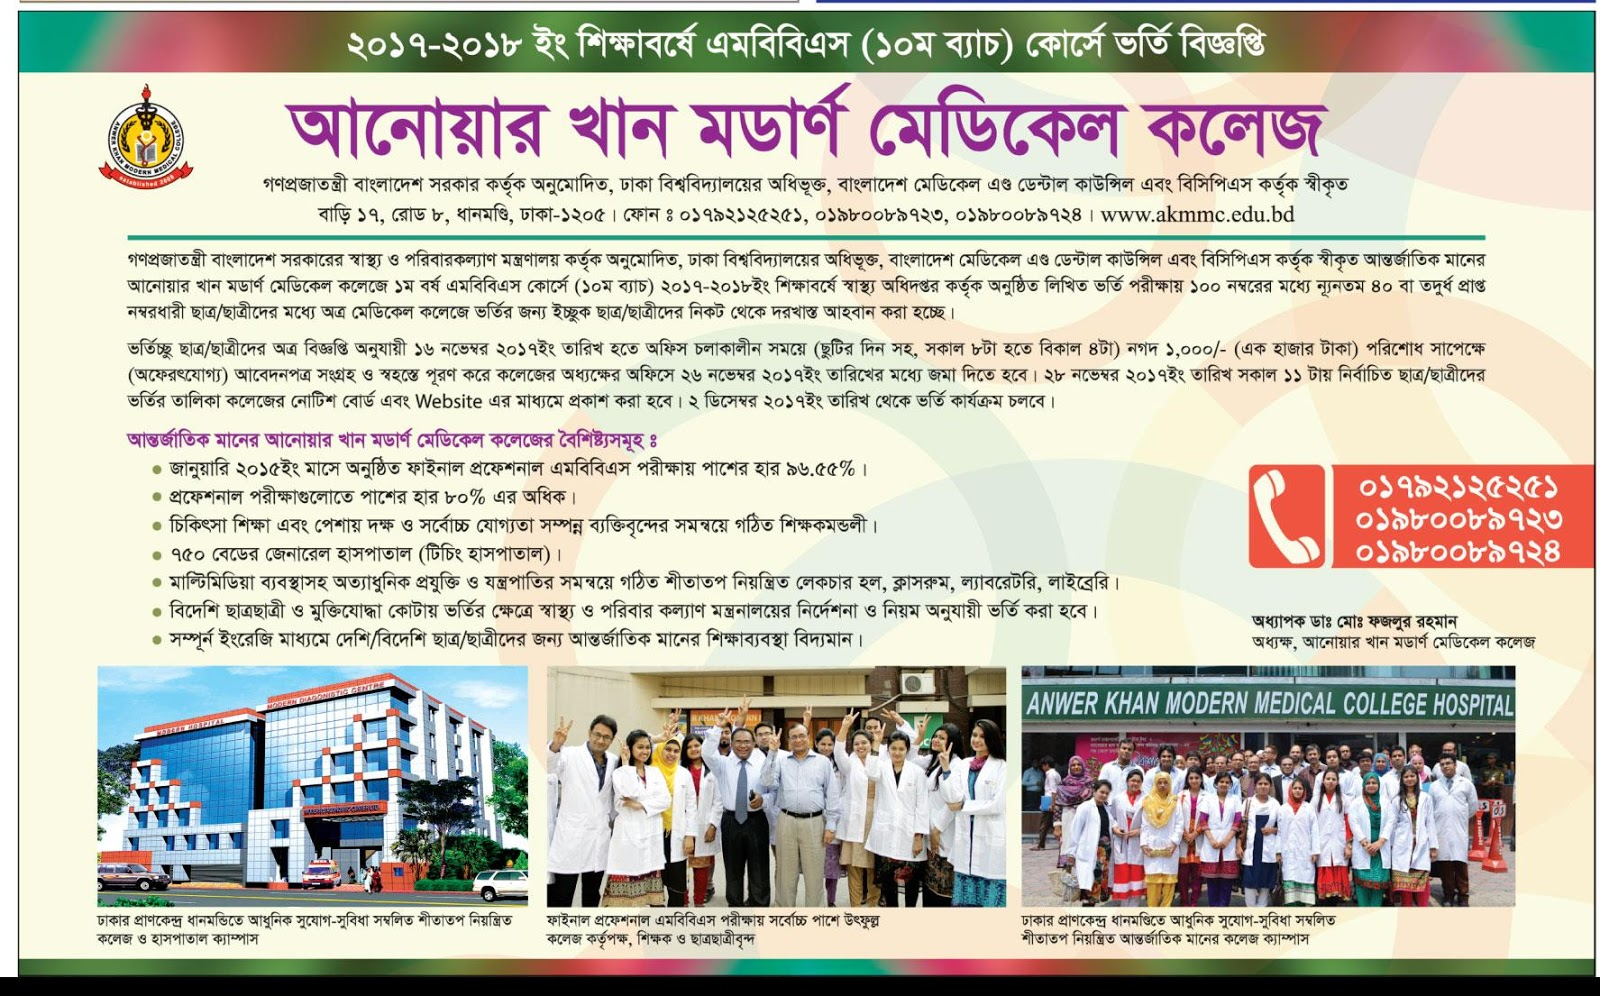 Anower Khan Modern Medical College MBBS Admission